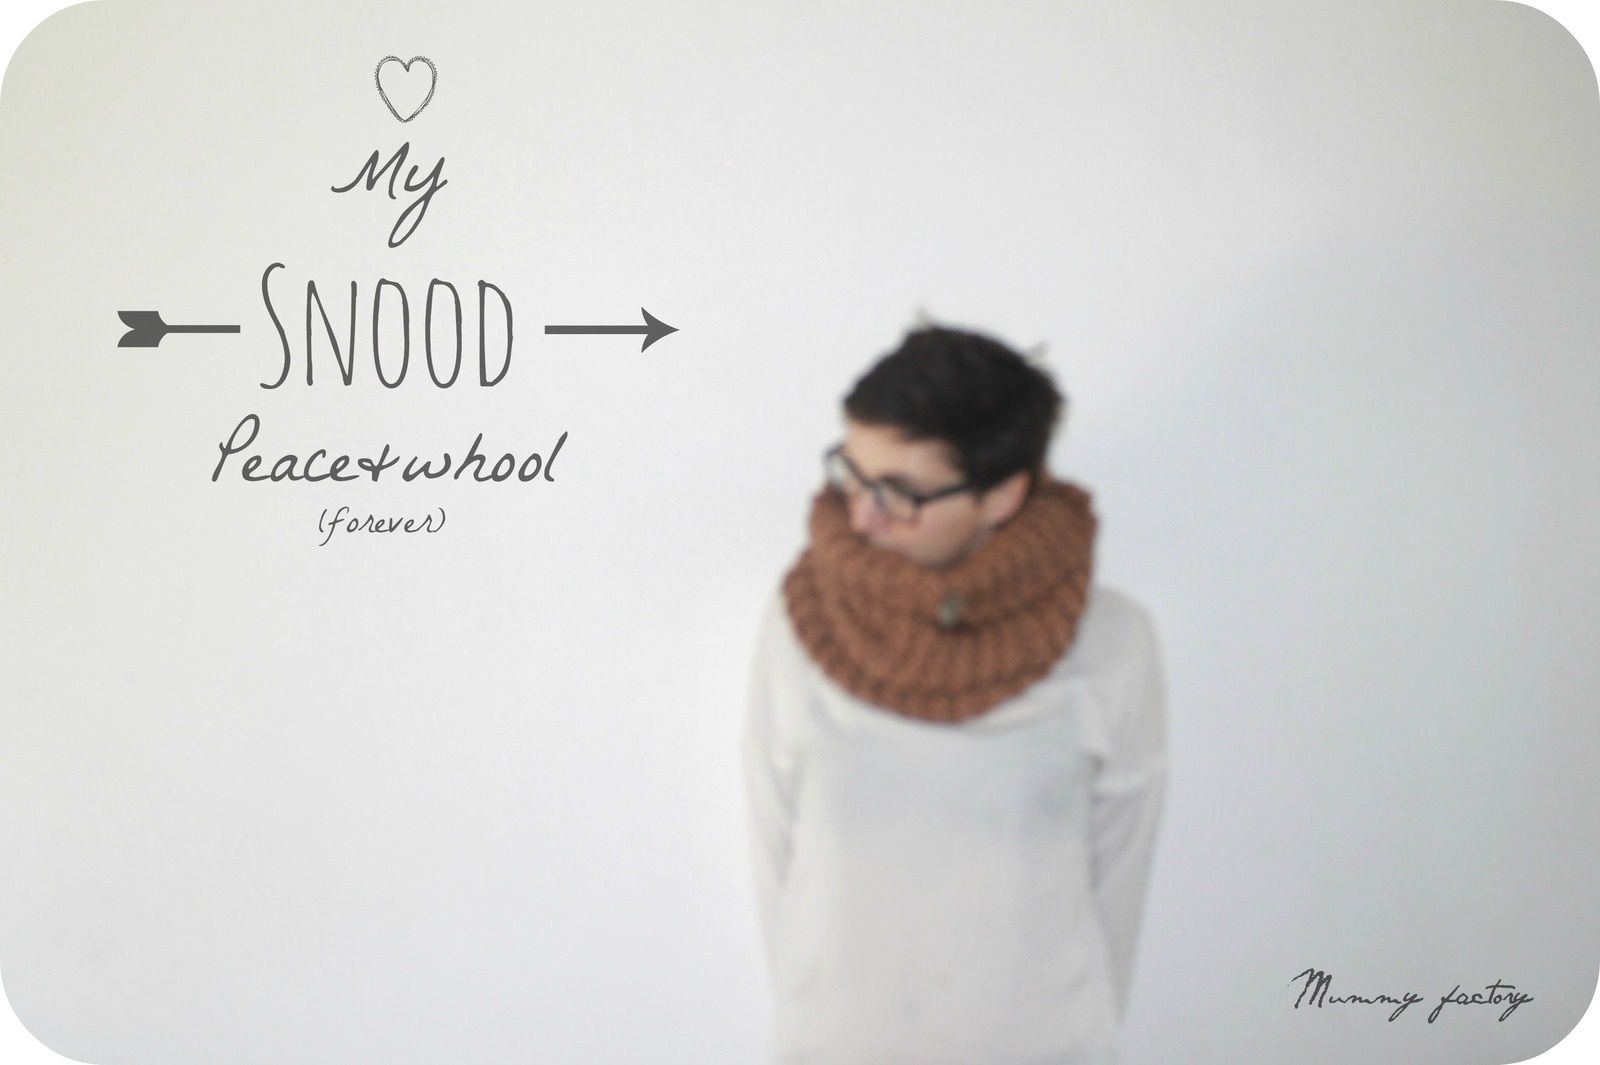 Le snood peace and wool de mummy factory